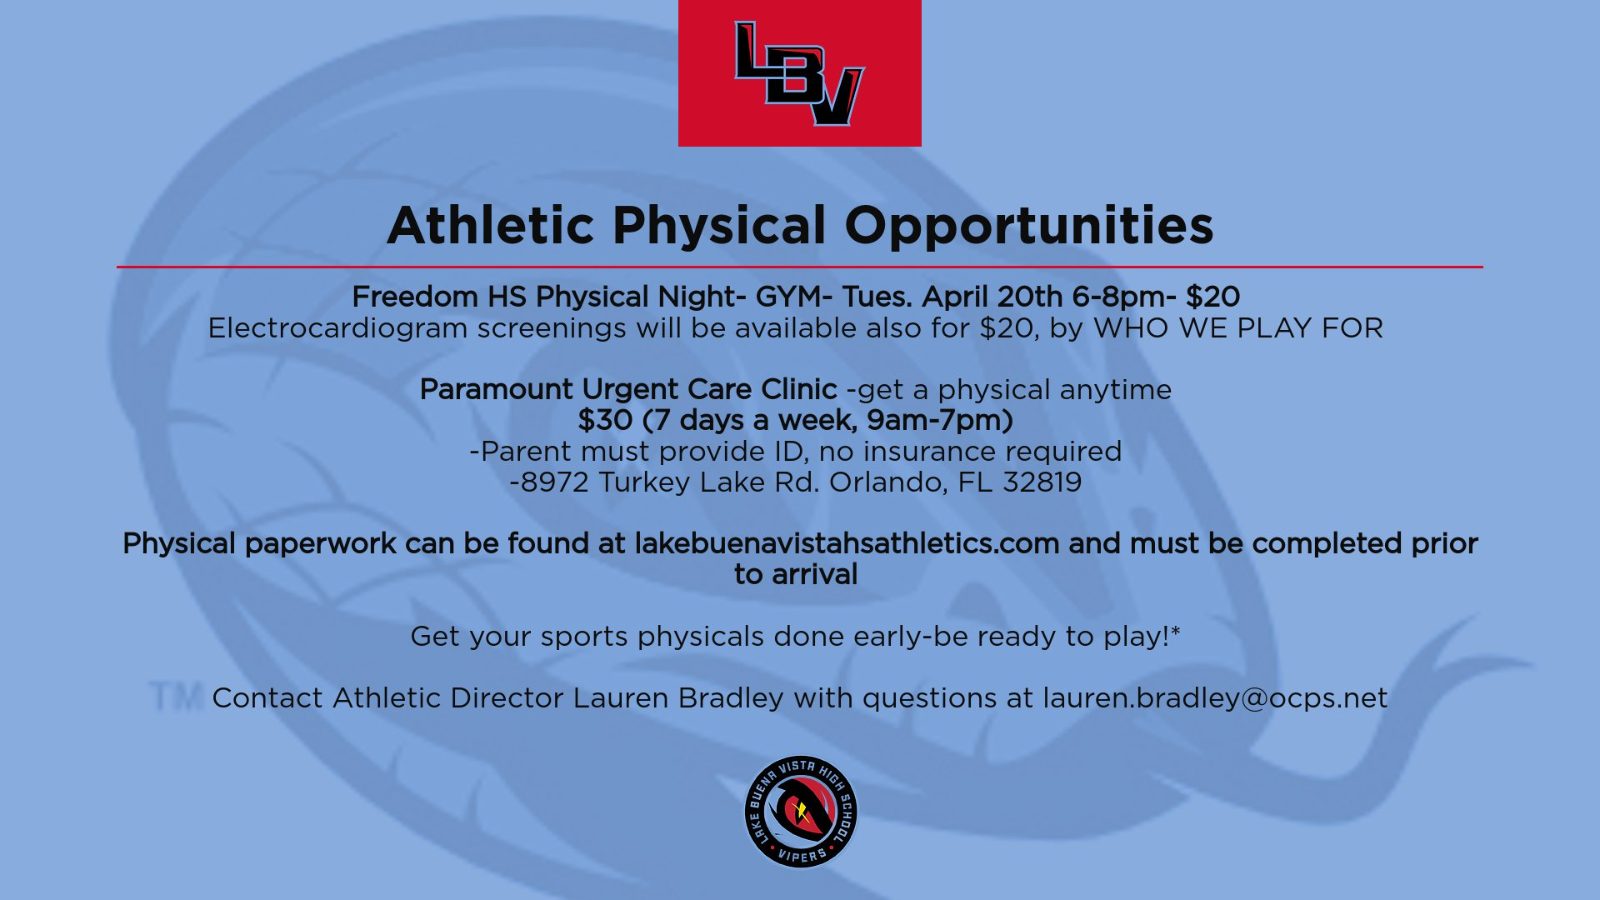 Upcoming Athletic Physical Opportunities